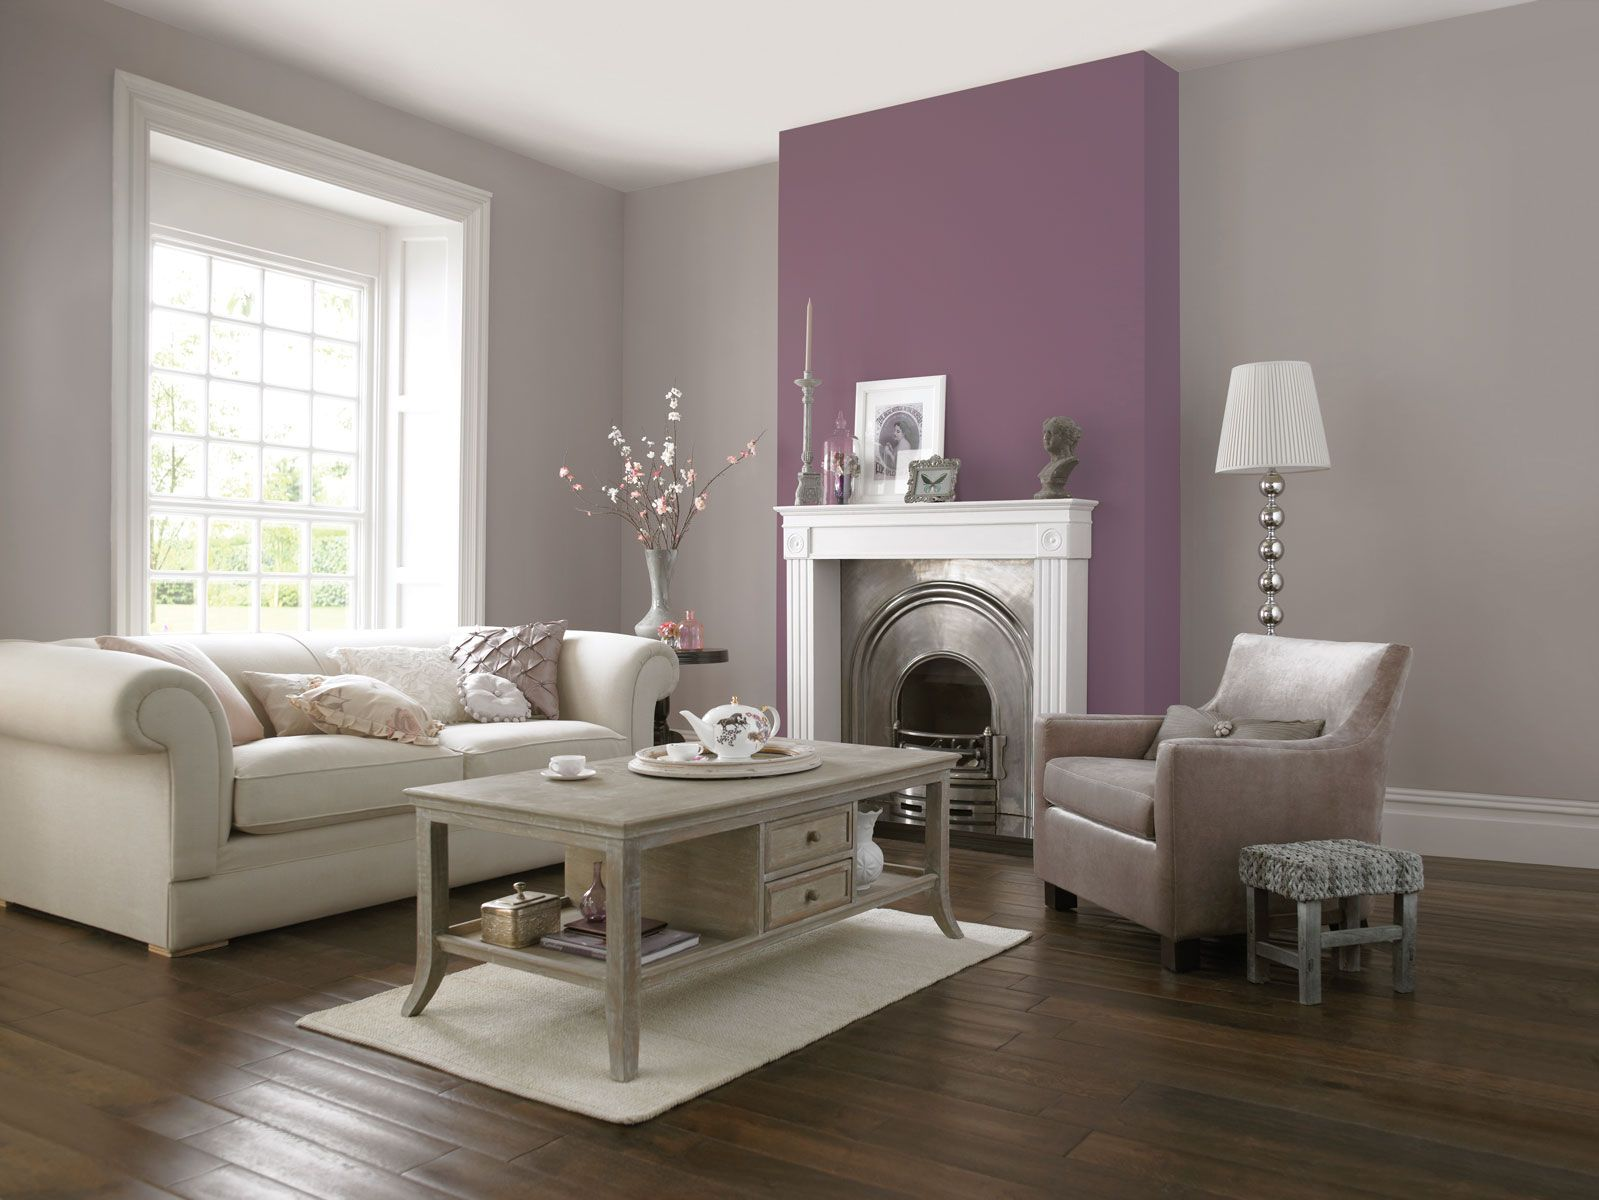 Harmonising Colours Can Create A Feminine Yet Striking Combination And By Incorporating Differen Purple Living Room Mauve Living Room Living Room Color Schemes #nice #colors #for #living #room #walls